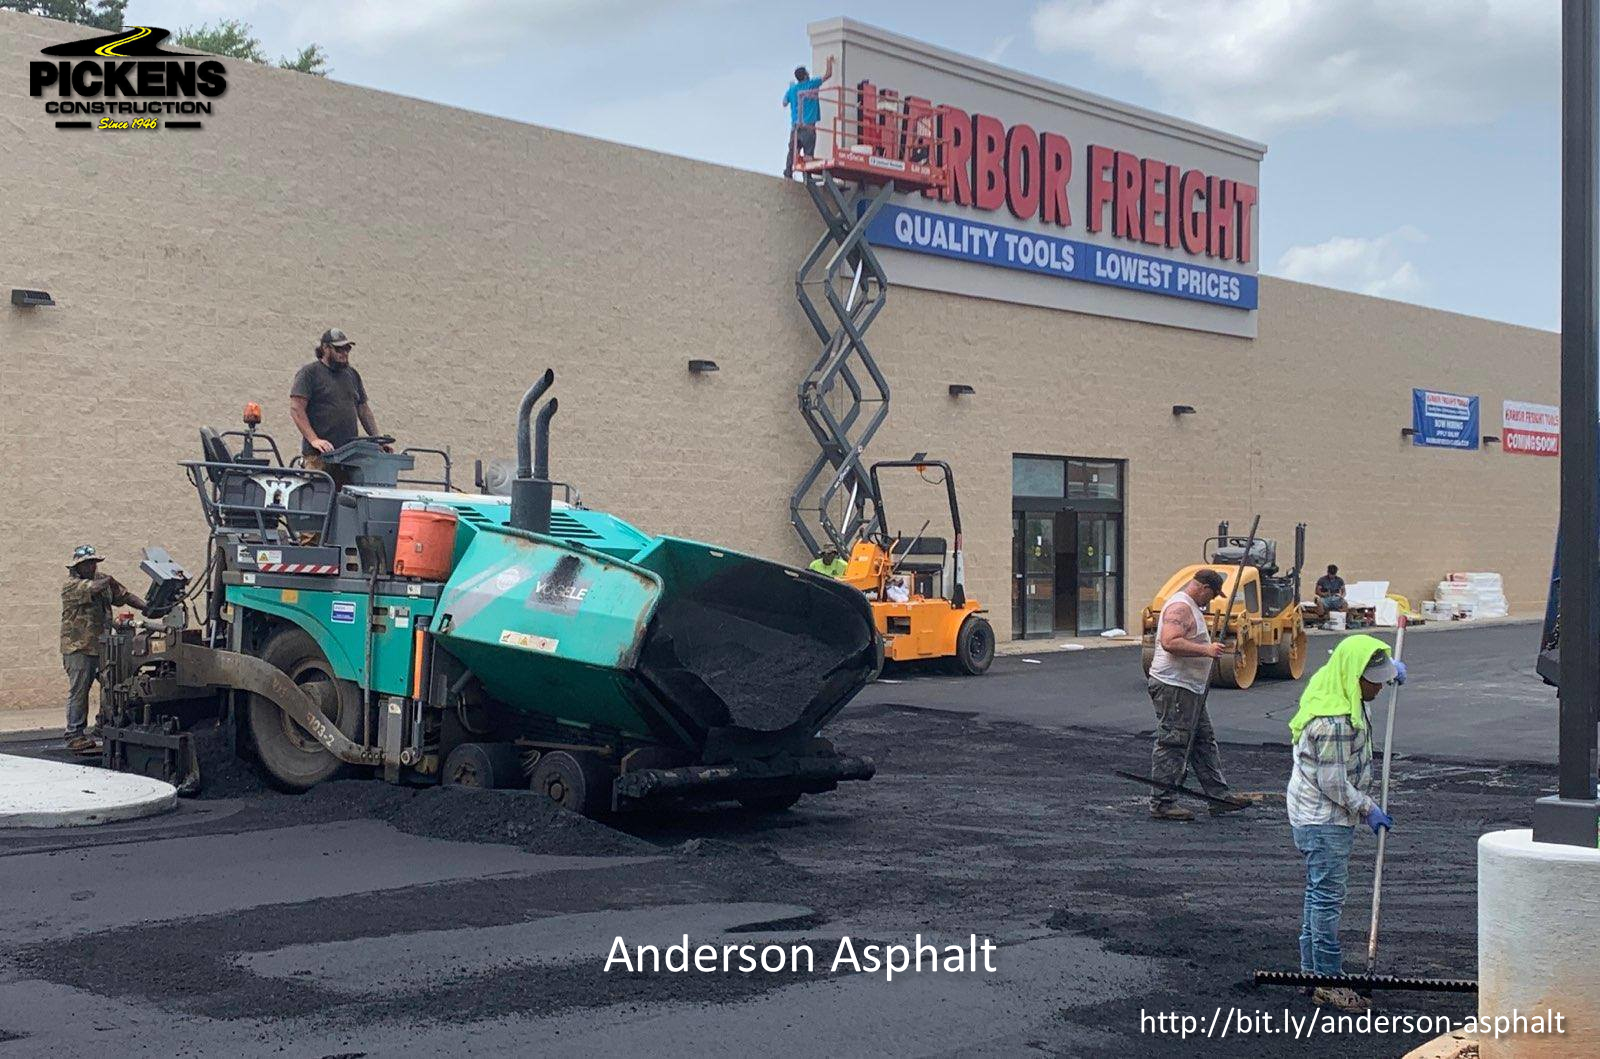 Pickens Construction Inc. is Now Offering Asphalt Sealing at Affordable Rates